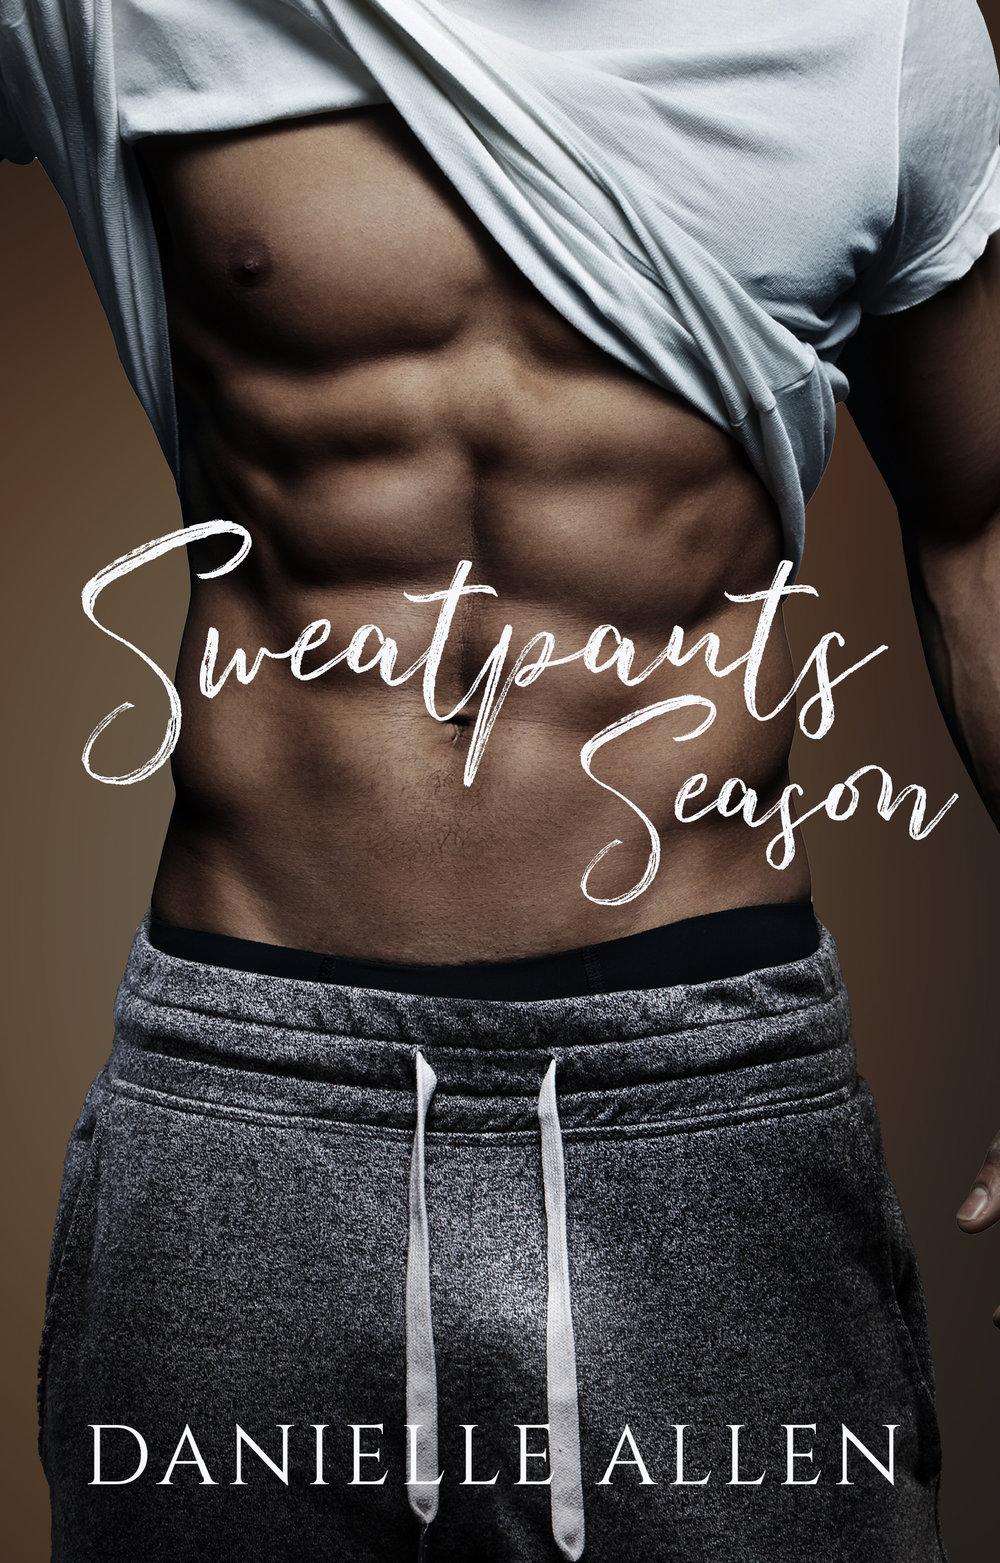 Sweatpants Season cover.jpg